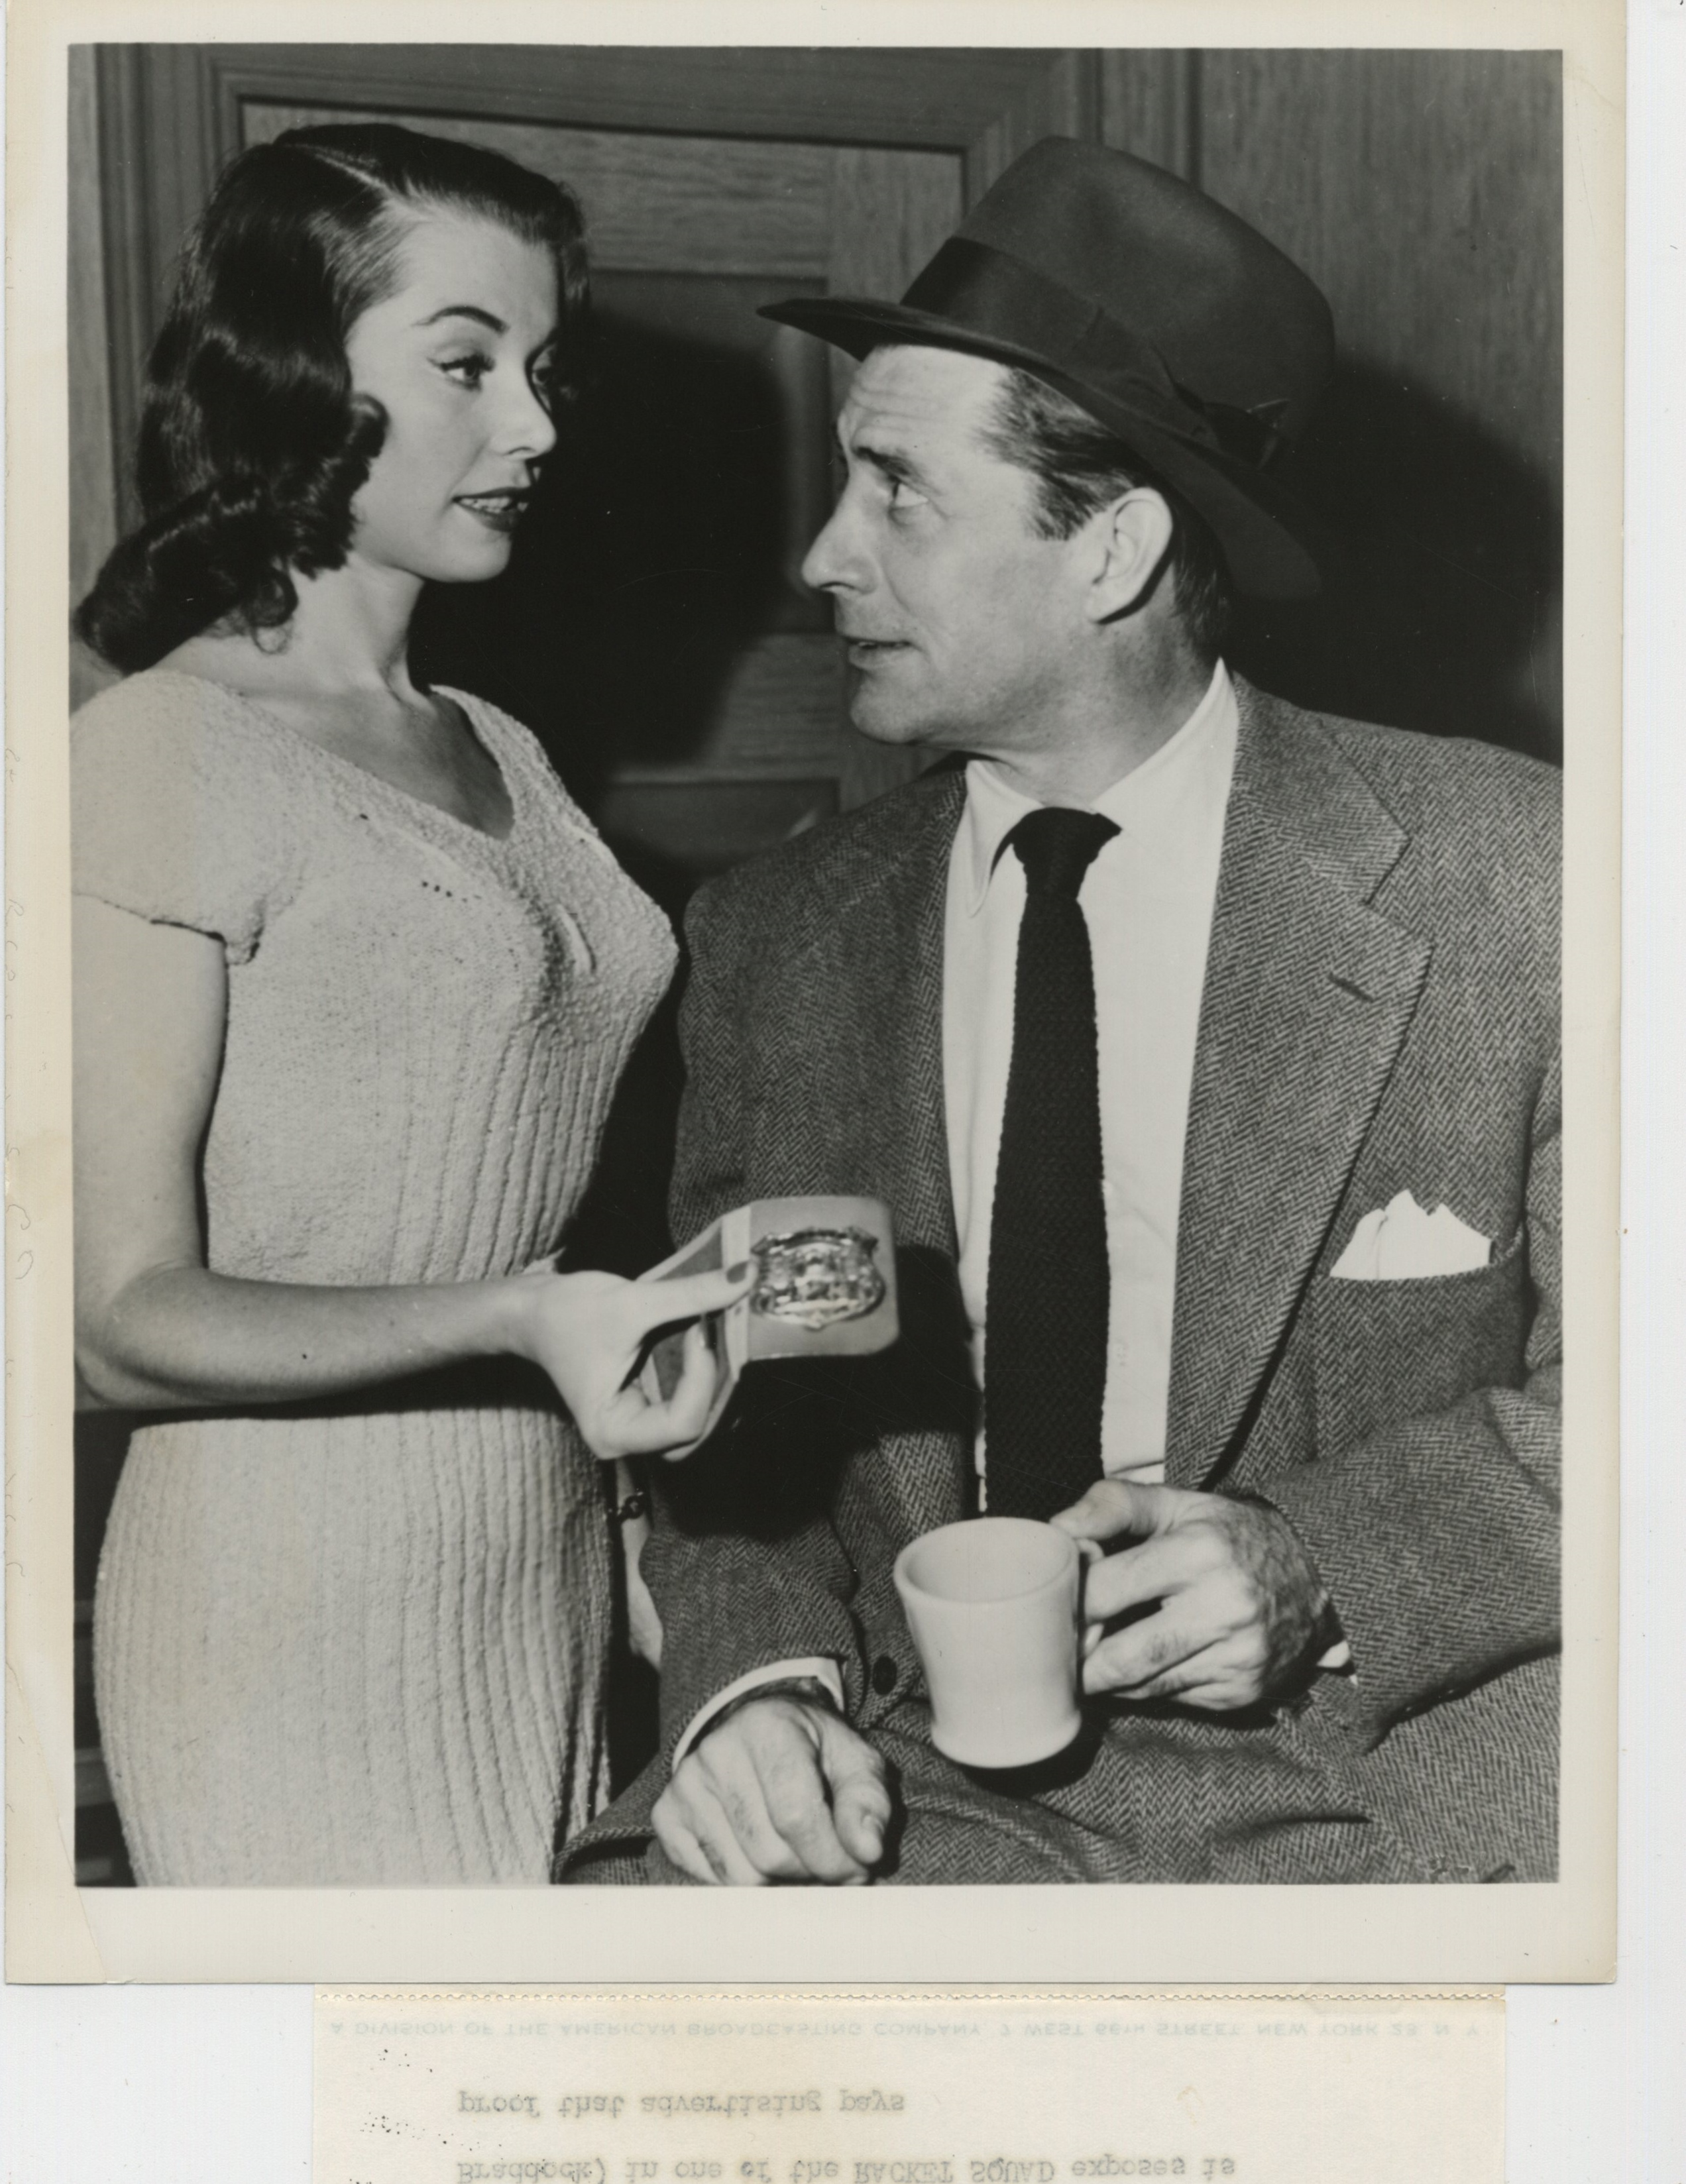 Reed Hadley and June Wurster in Racket Squad (1950)